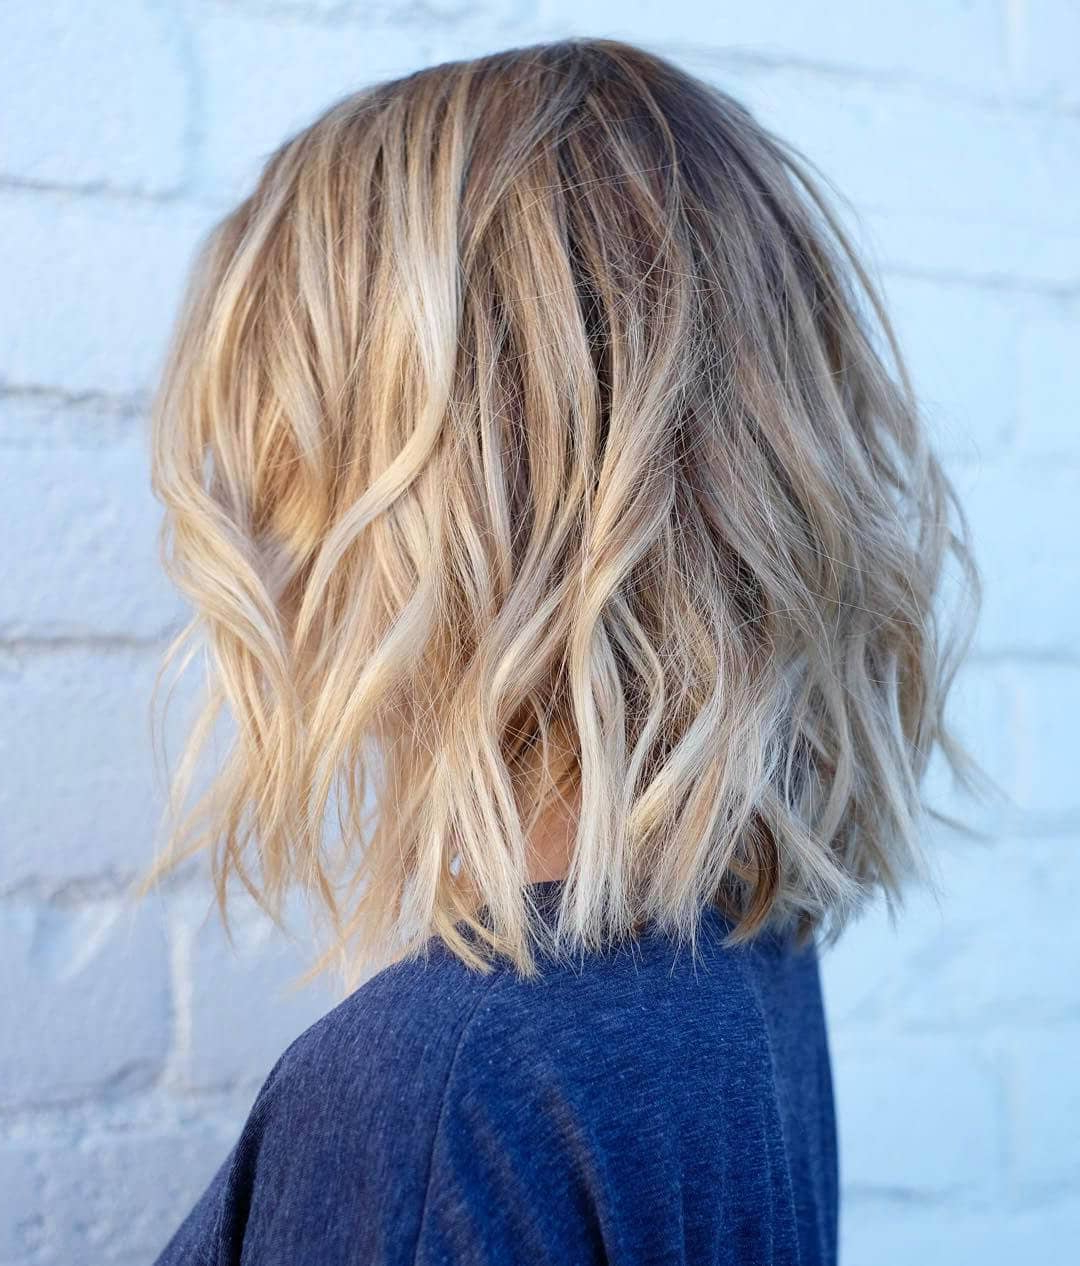 50 Fresh Short Blonde Hair Ideas To Update Your Style In 2018 Pertaining To White Blonde Curly Layered Bob Hairstyles (View 13 of 25)